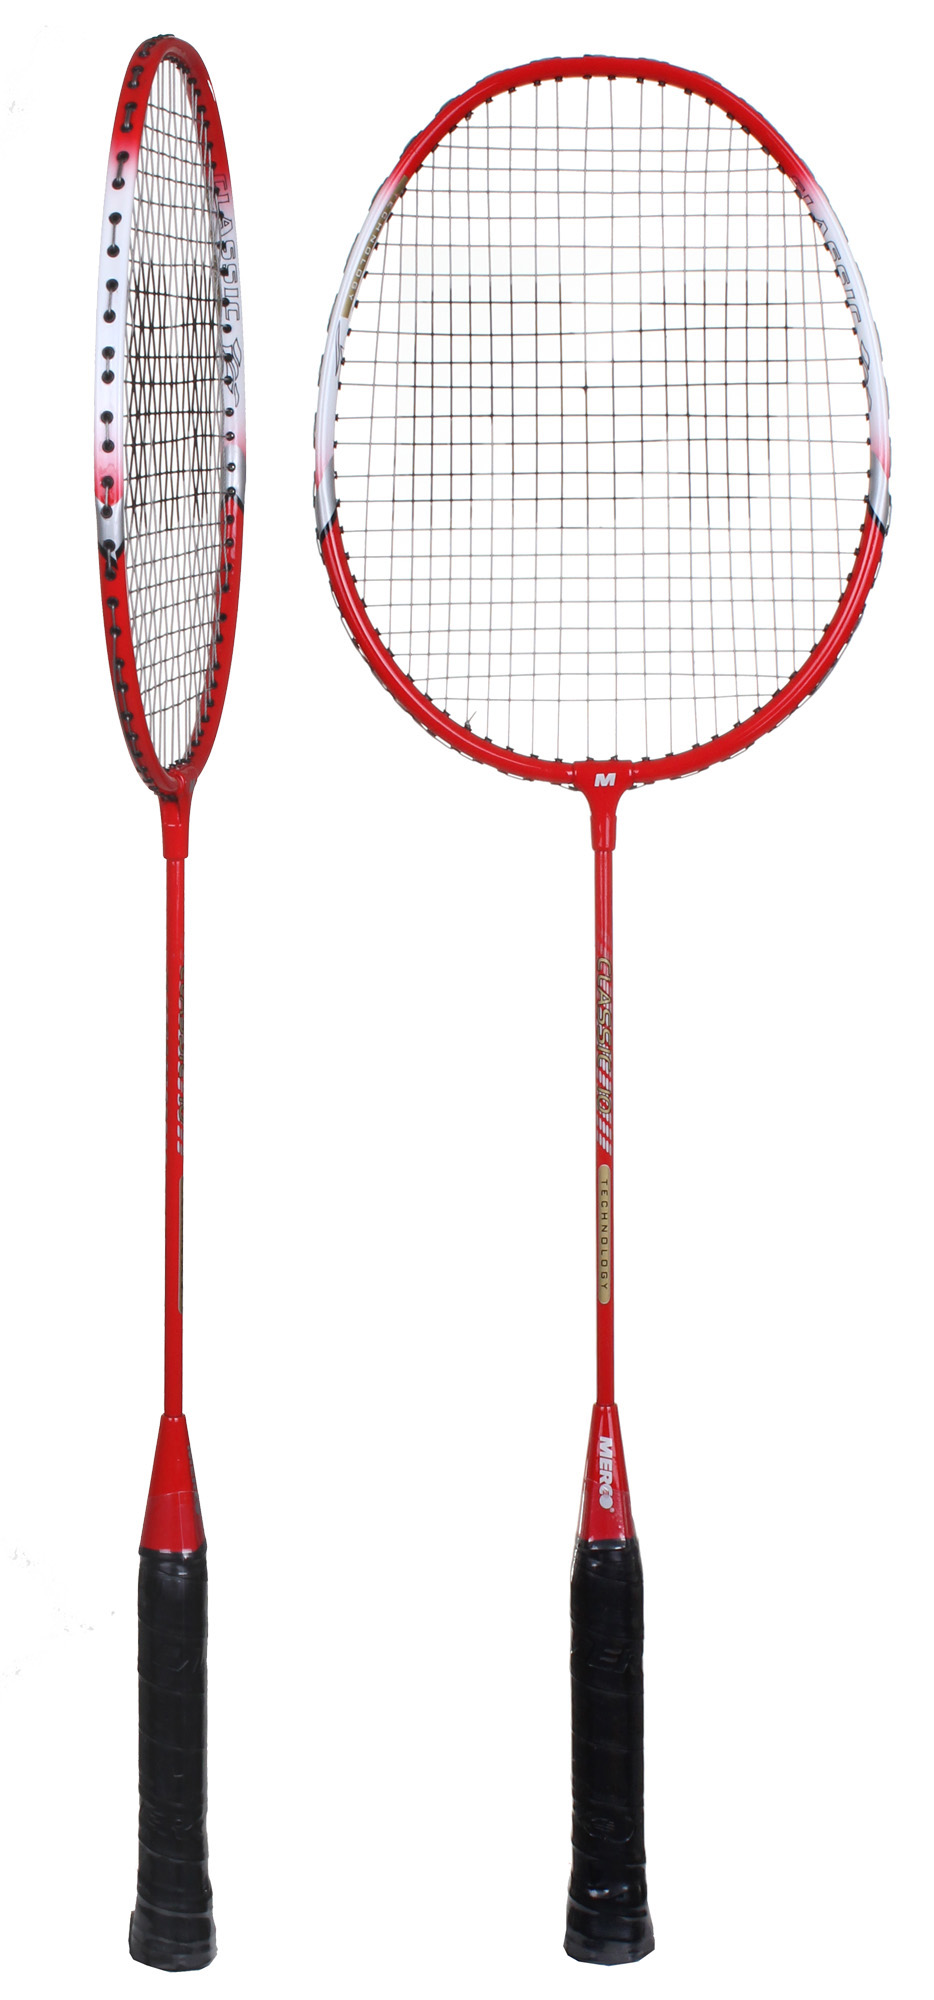 Merco Classic badmintonový set